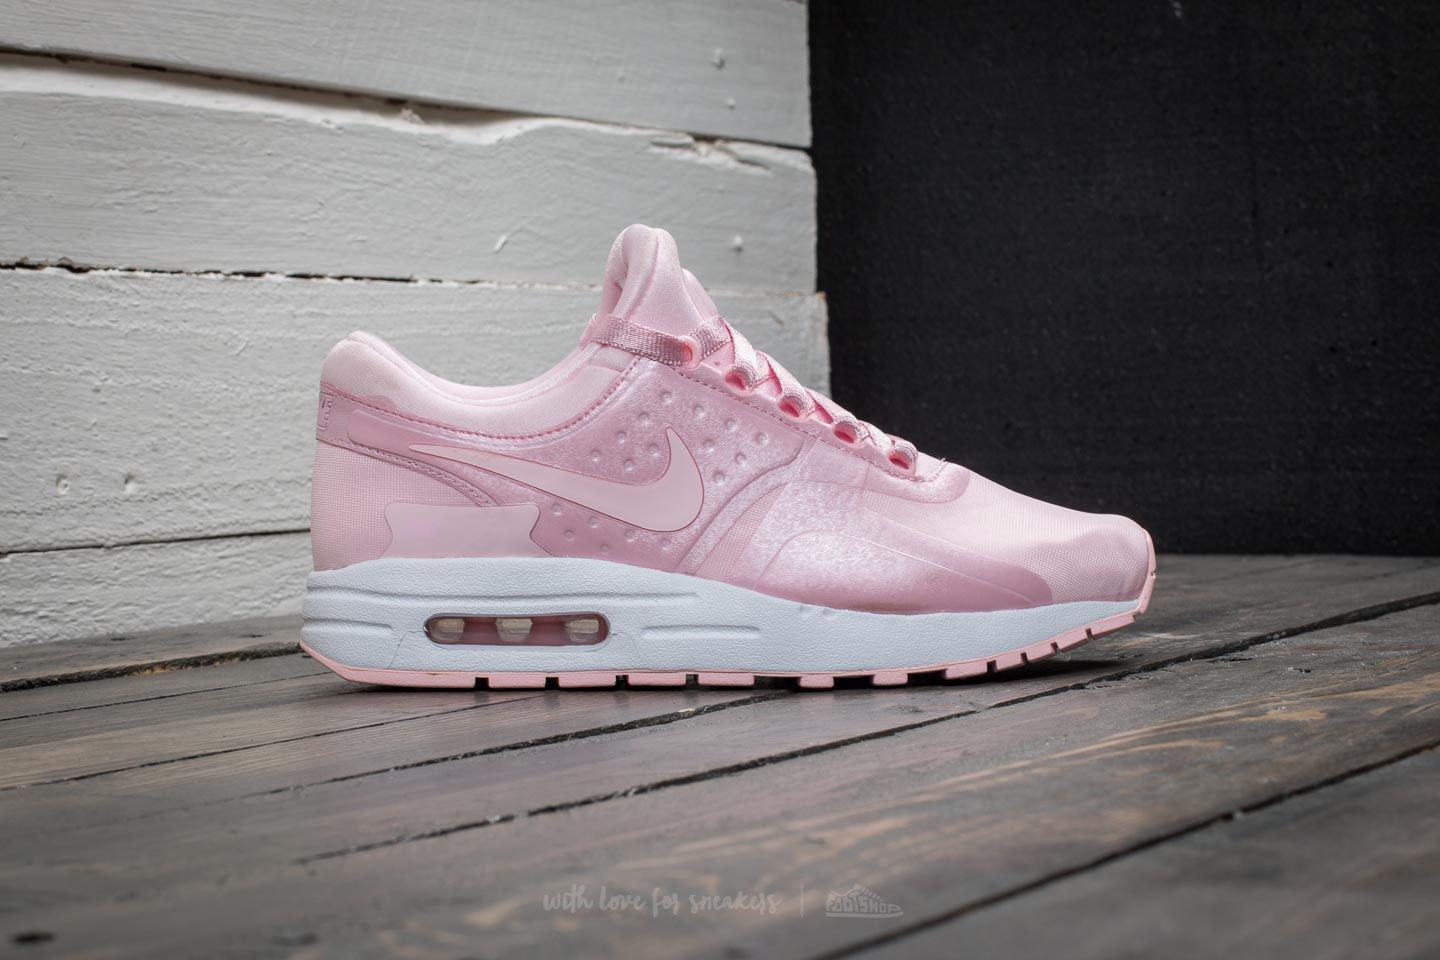 Lyst - Nike Air Max Zero Se (gs) Prism Pink  Prism Pink-white in Pink 9aa914a8c